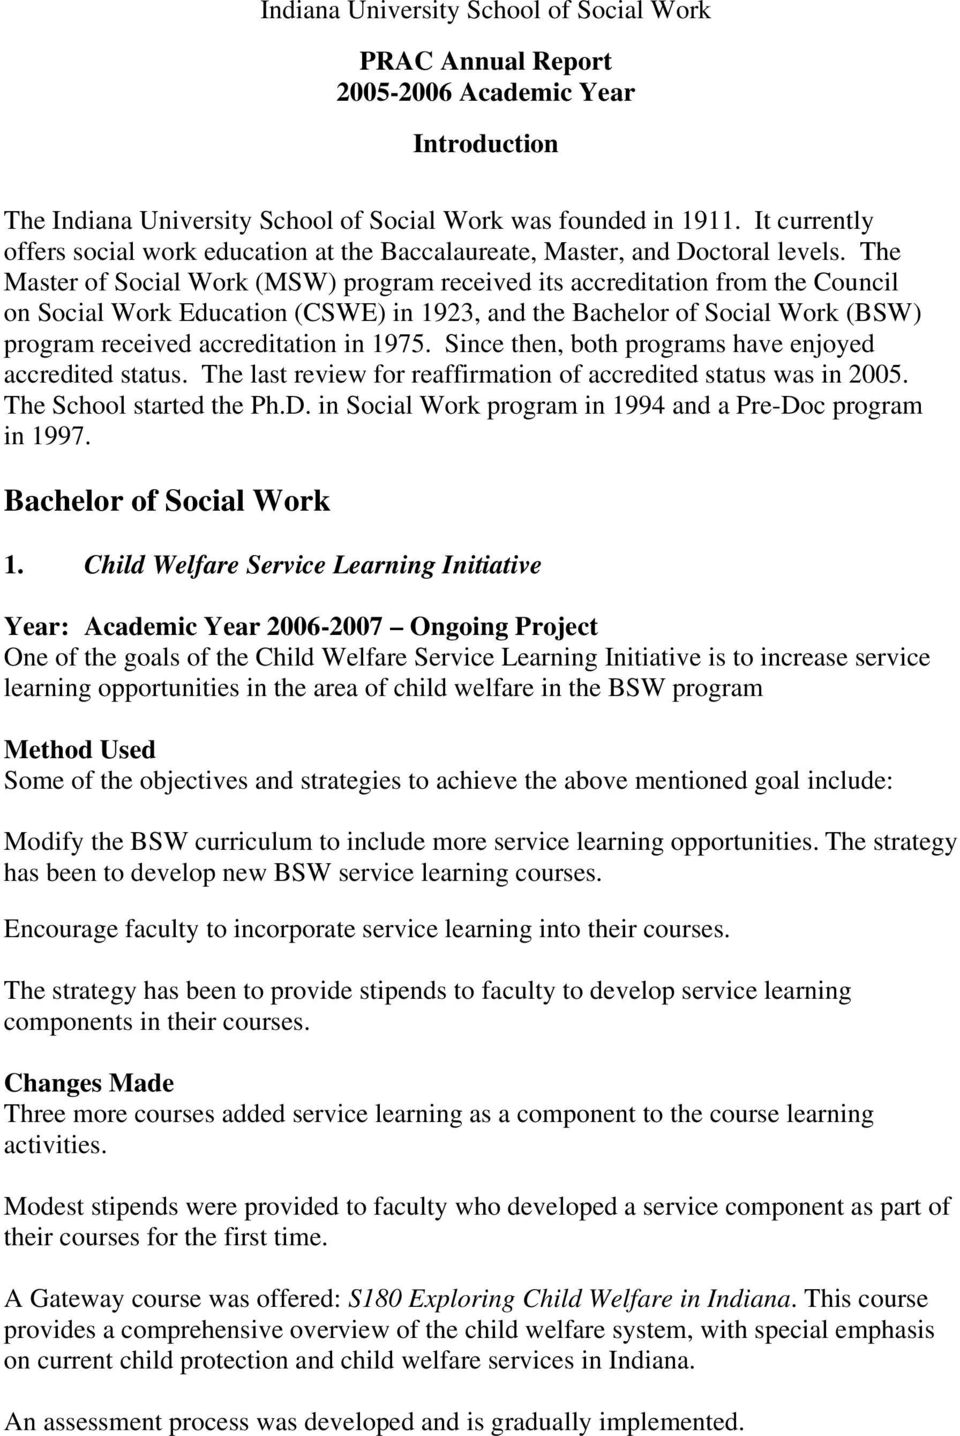 The Master of Social Work (MSW) program received its accreditation from the Council on Social Work Education (CSWE) in 1923, and the Bachelor of Social Work (BSW) program received accreditation in